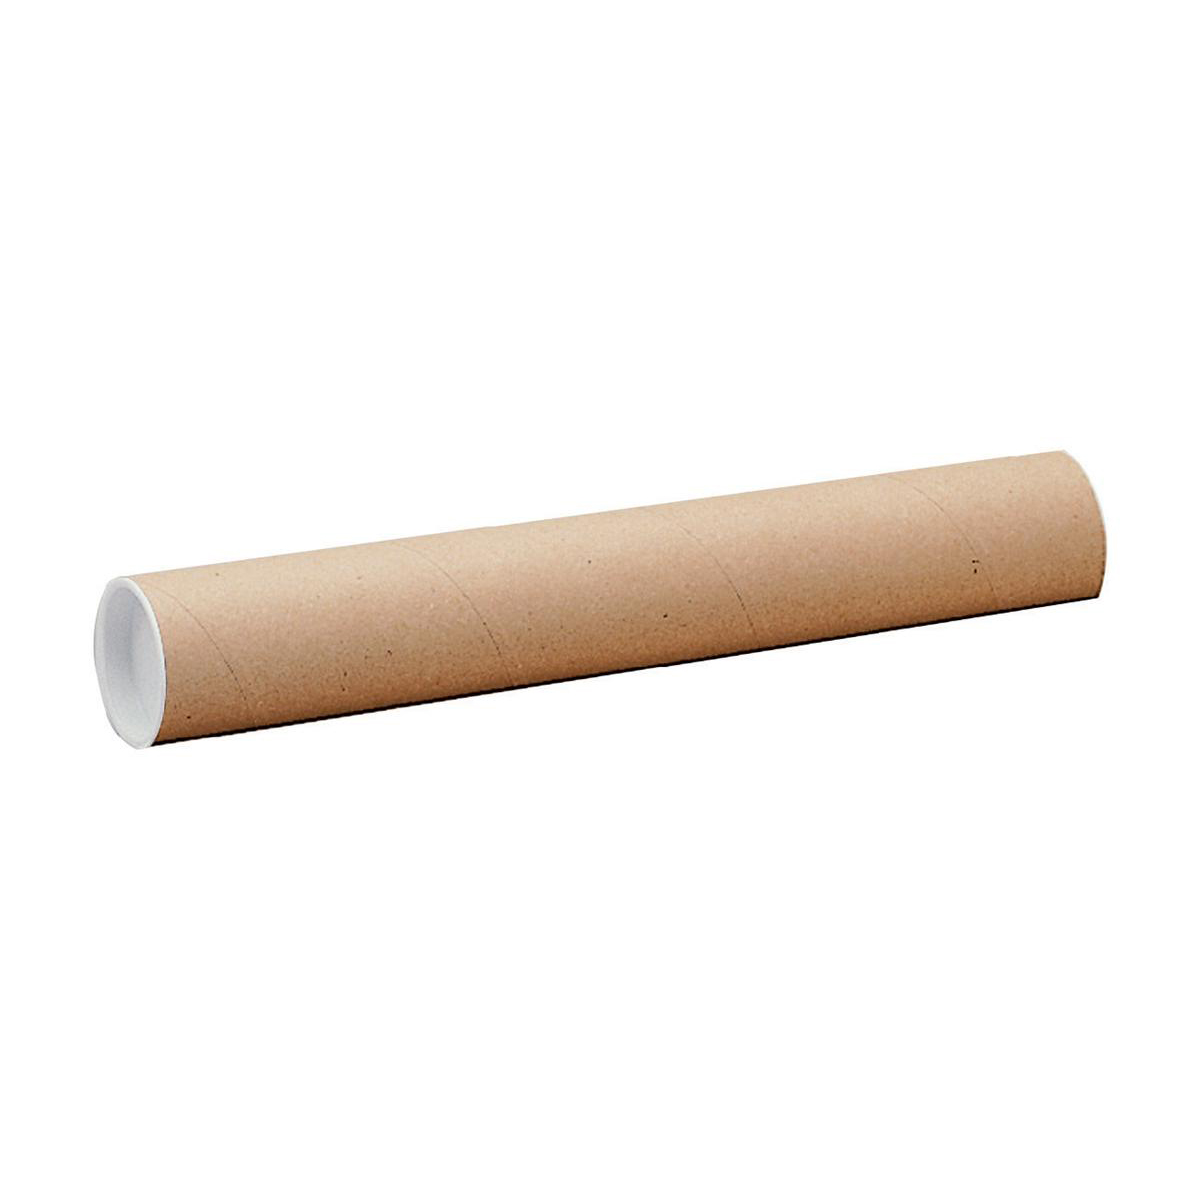 Postal Tube Cardboard with Plastic End Caps L610xDia.76mm RBL10523 Pack 12